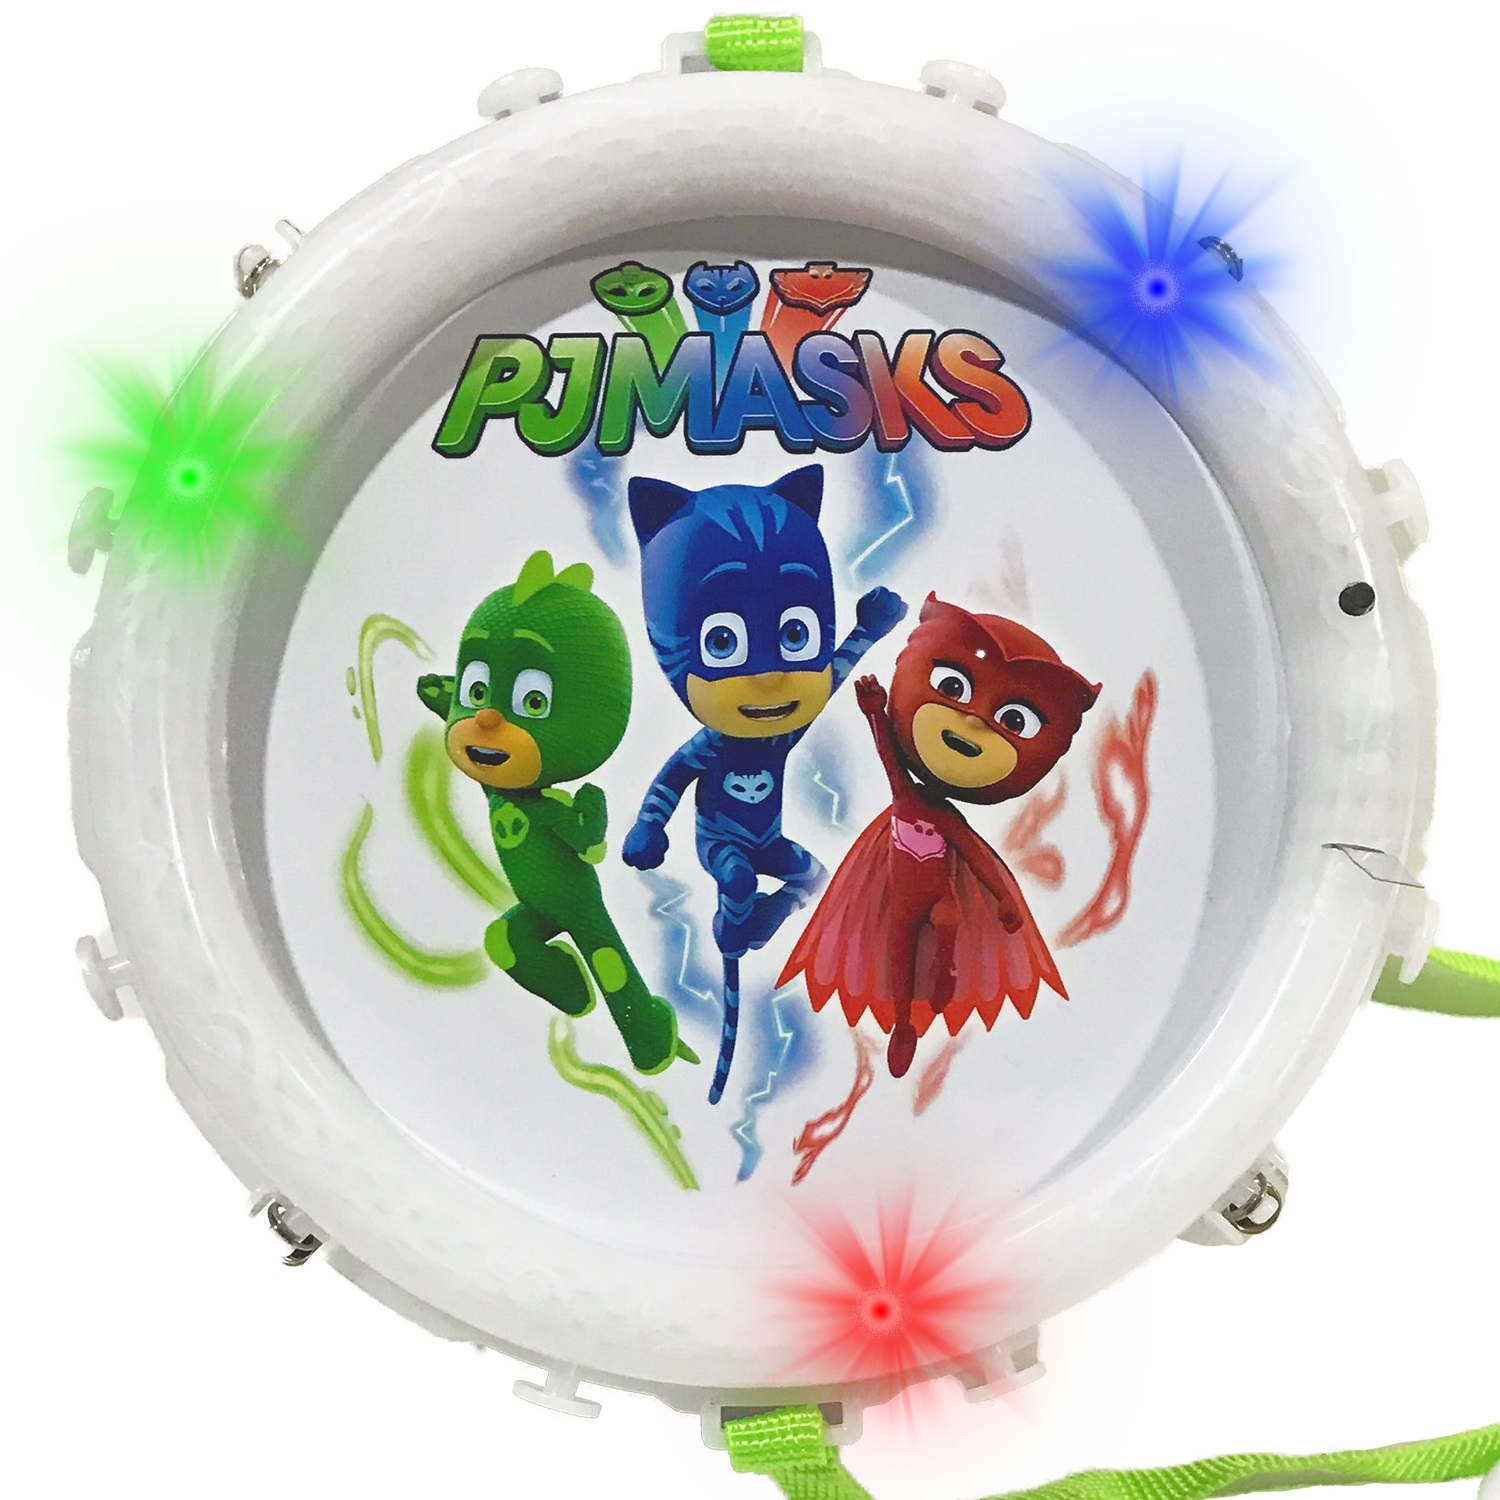 Музыкальные инструменты PJ Masks Барабан Pj Masks со световым эффектом 3m 8210 mask 10pcs lot dust masks anti particles anti pm2 5 n95 standards masks working respirator welded high quality l0407t